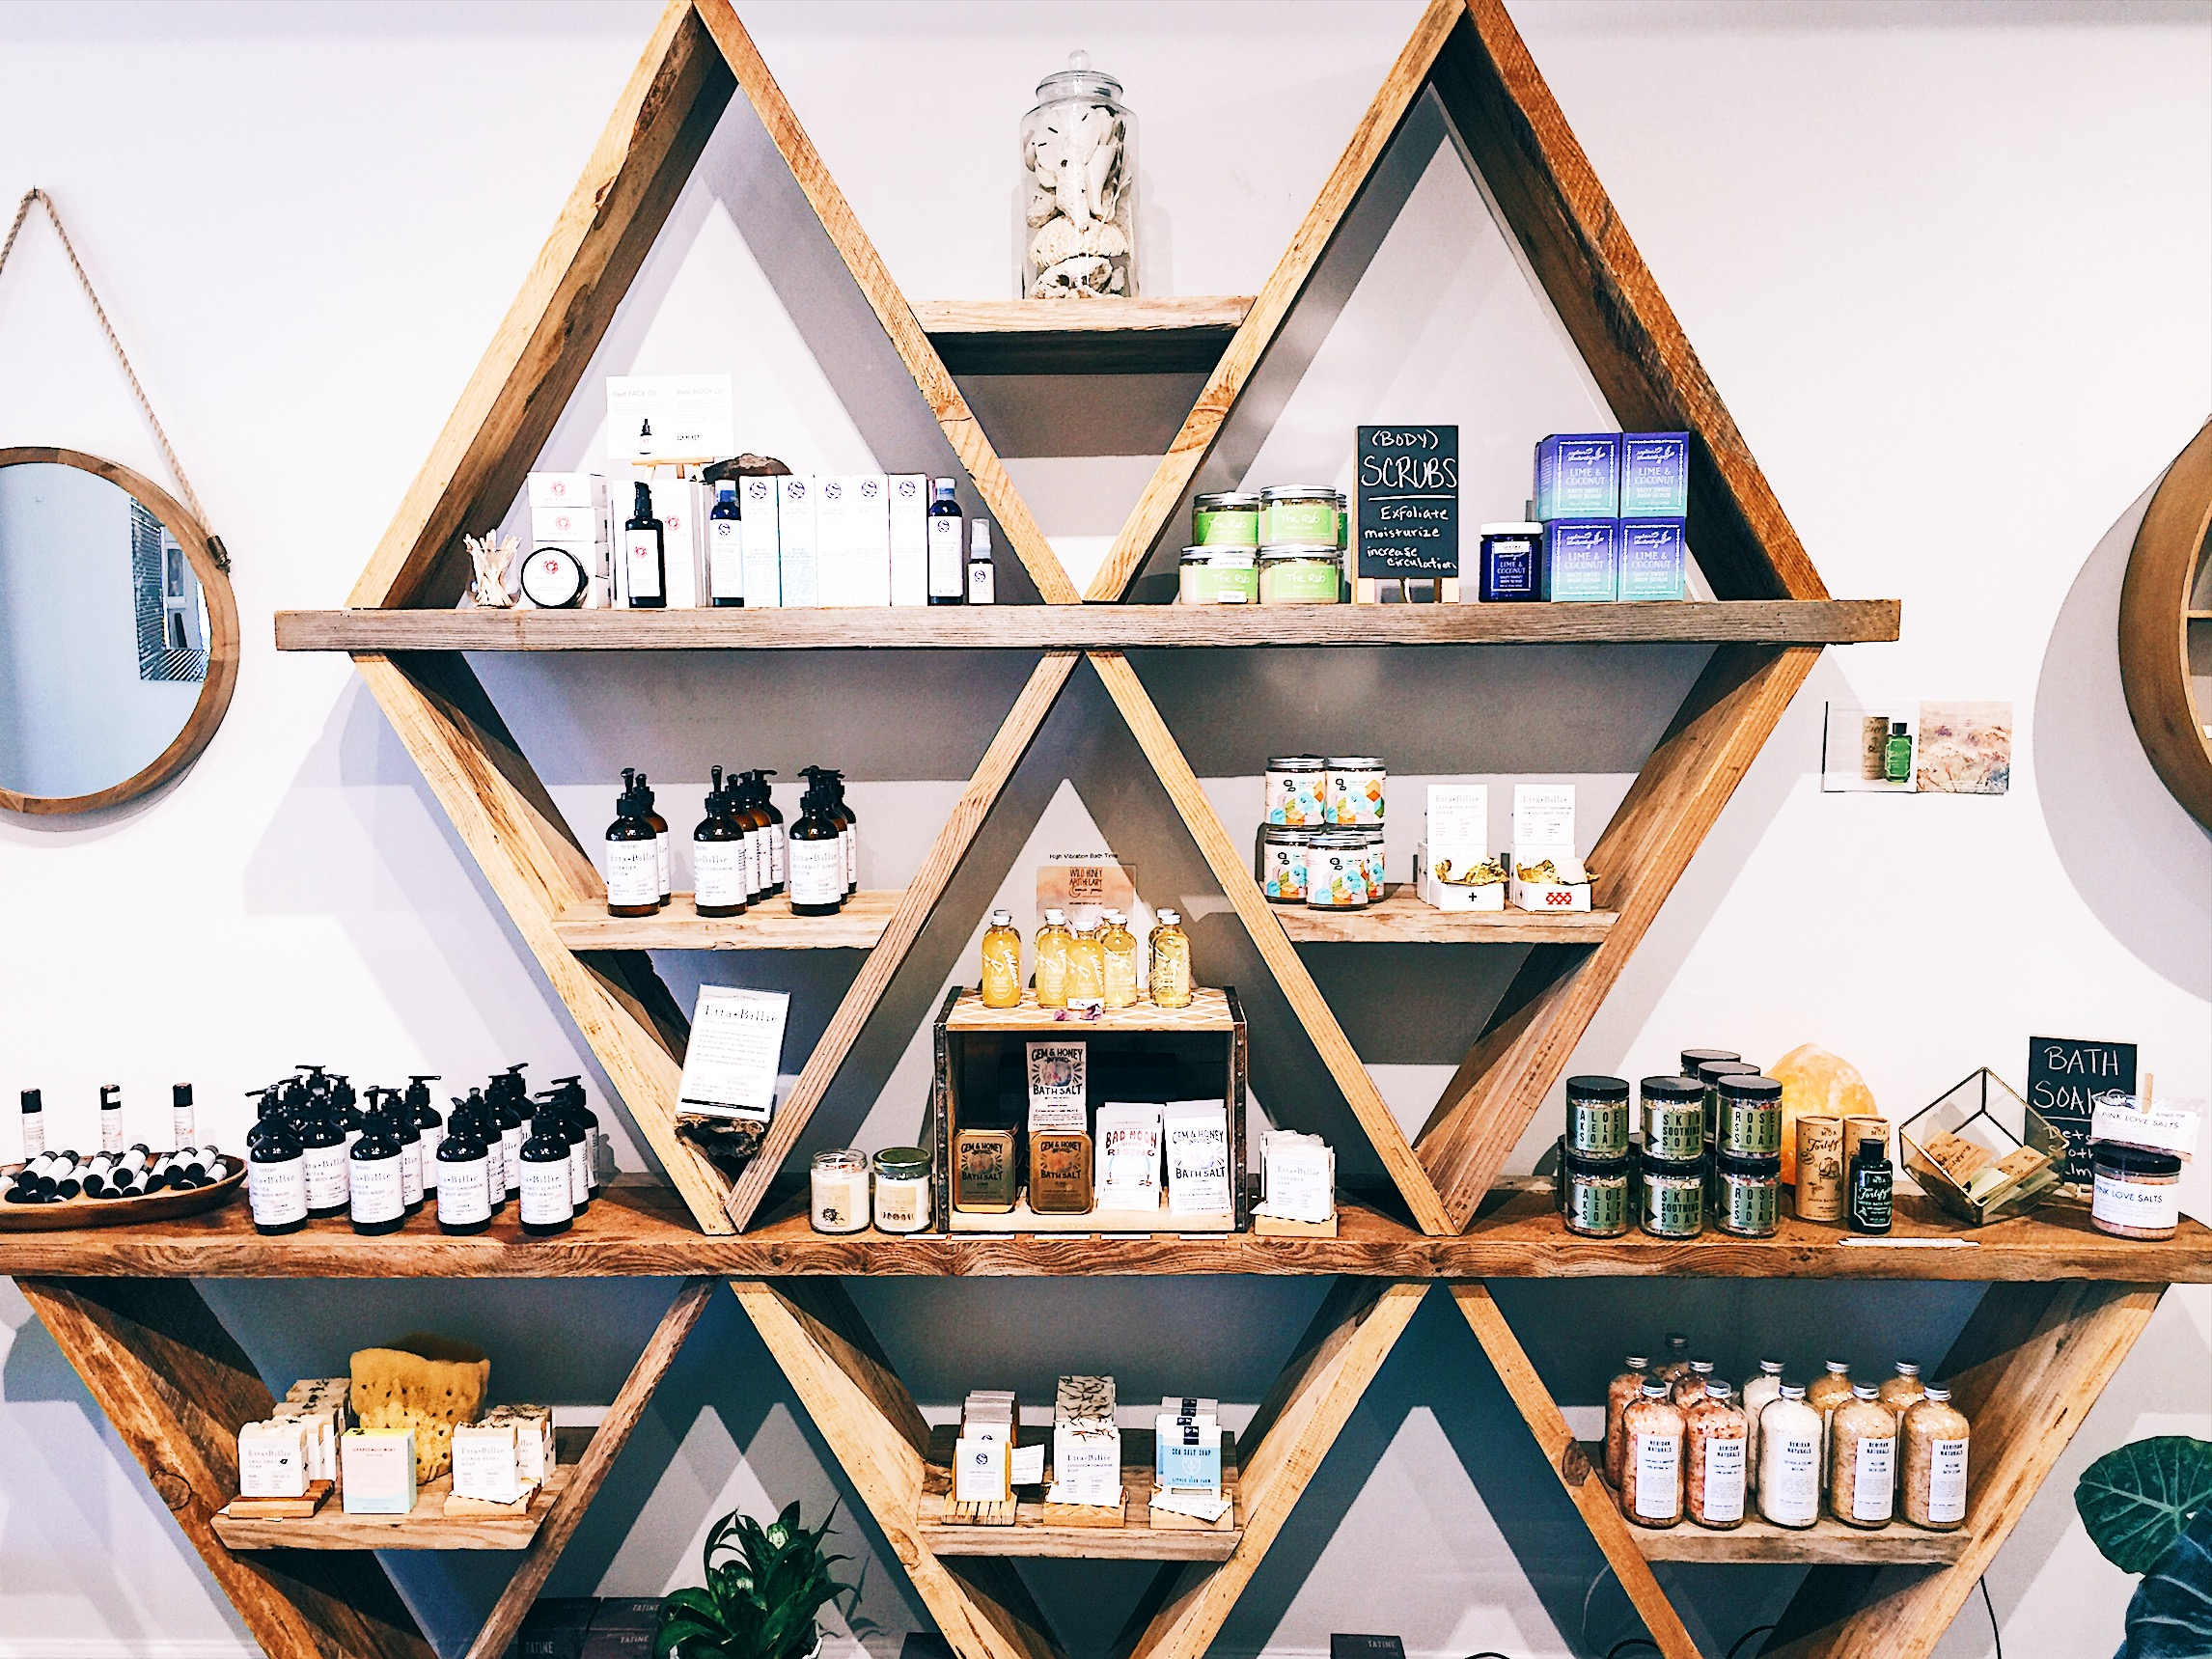 Wildcraft is an indie boutique specializing - in self-care rituals with a healthy, nontoxic focus. We opened our doors February 2016.